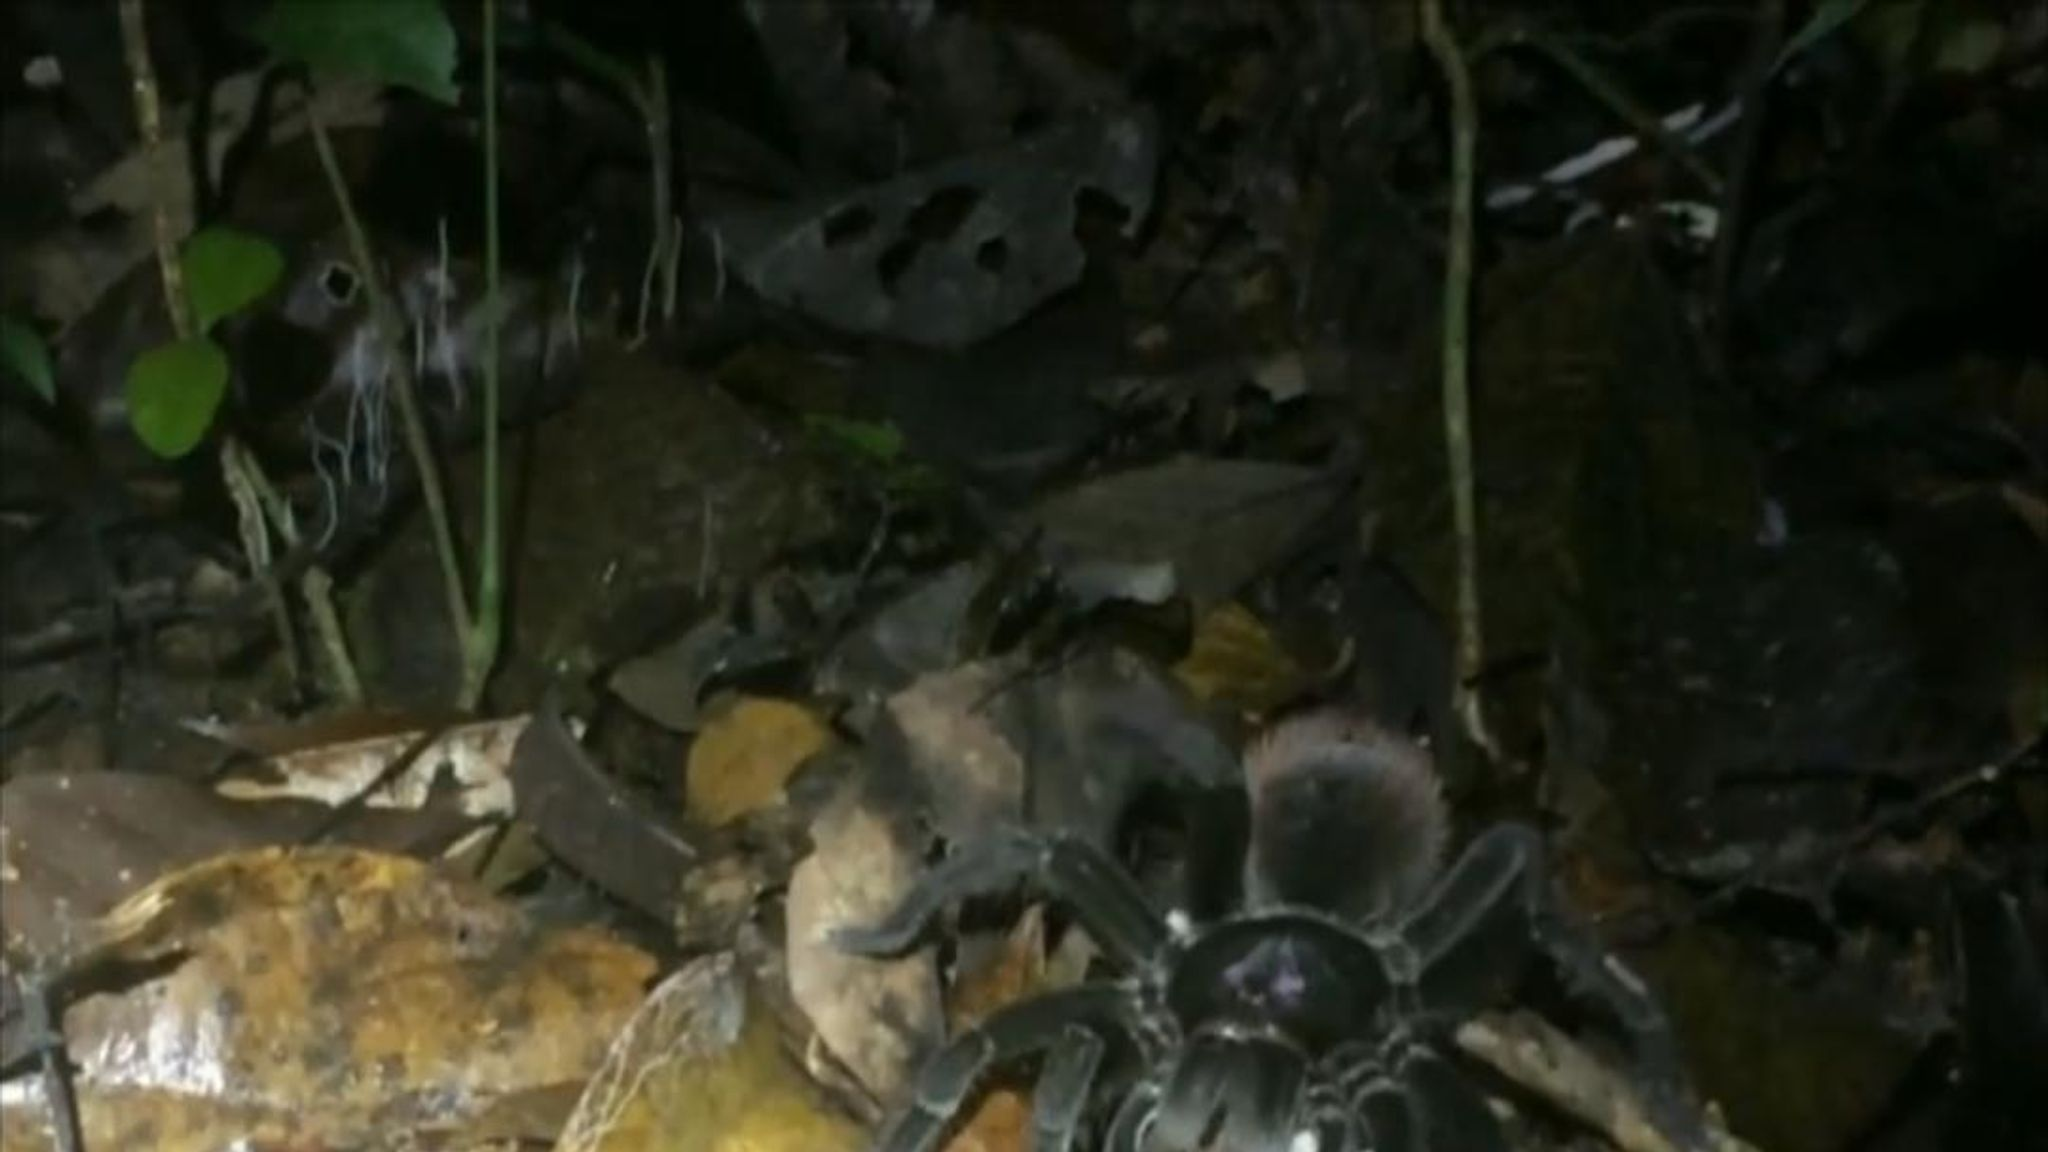 A Woman In Peru Came Across A Scene That Will Cause Give Anyone Suffering From Arachnophobia To Have Sleepless Nights